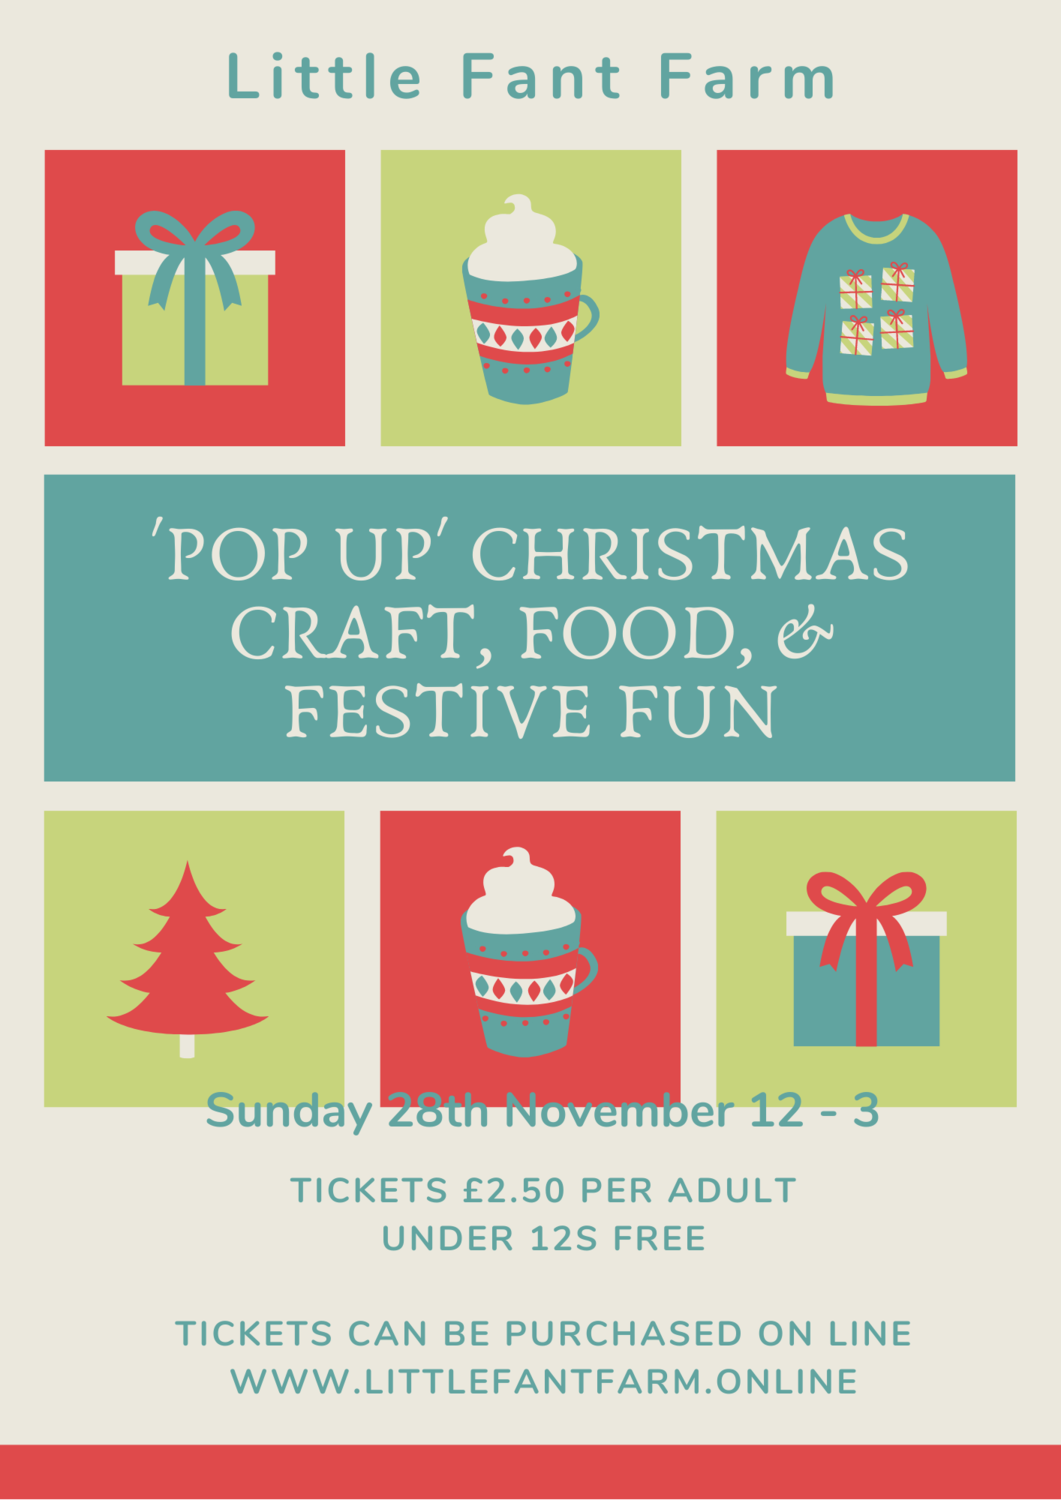 Pop Up Christmas Food & Craft Festival - Entry Ticket